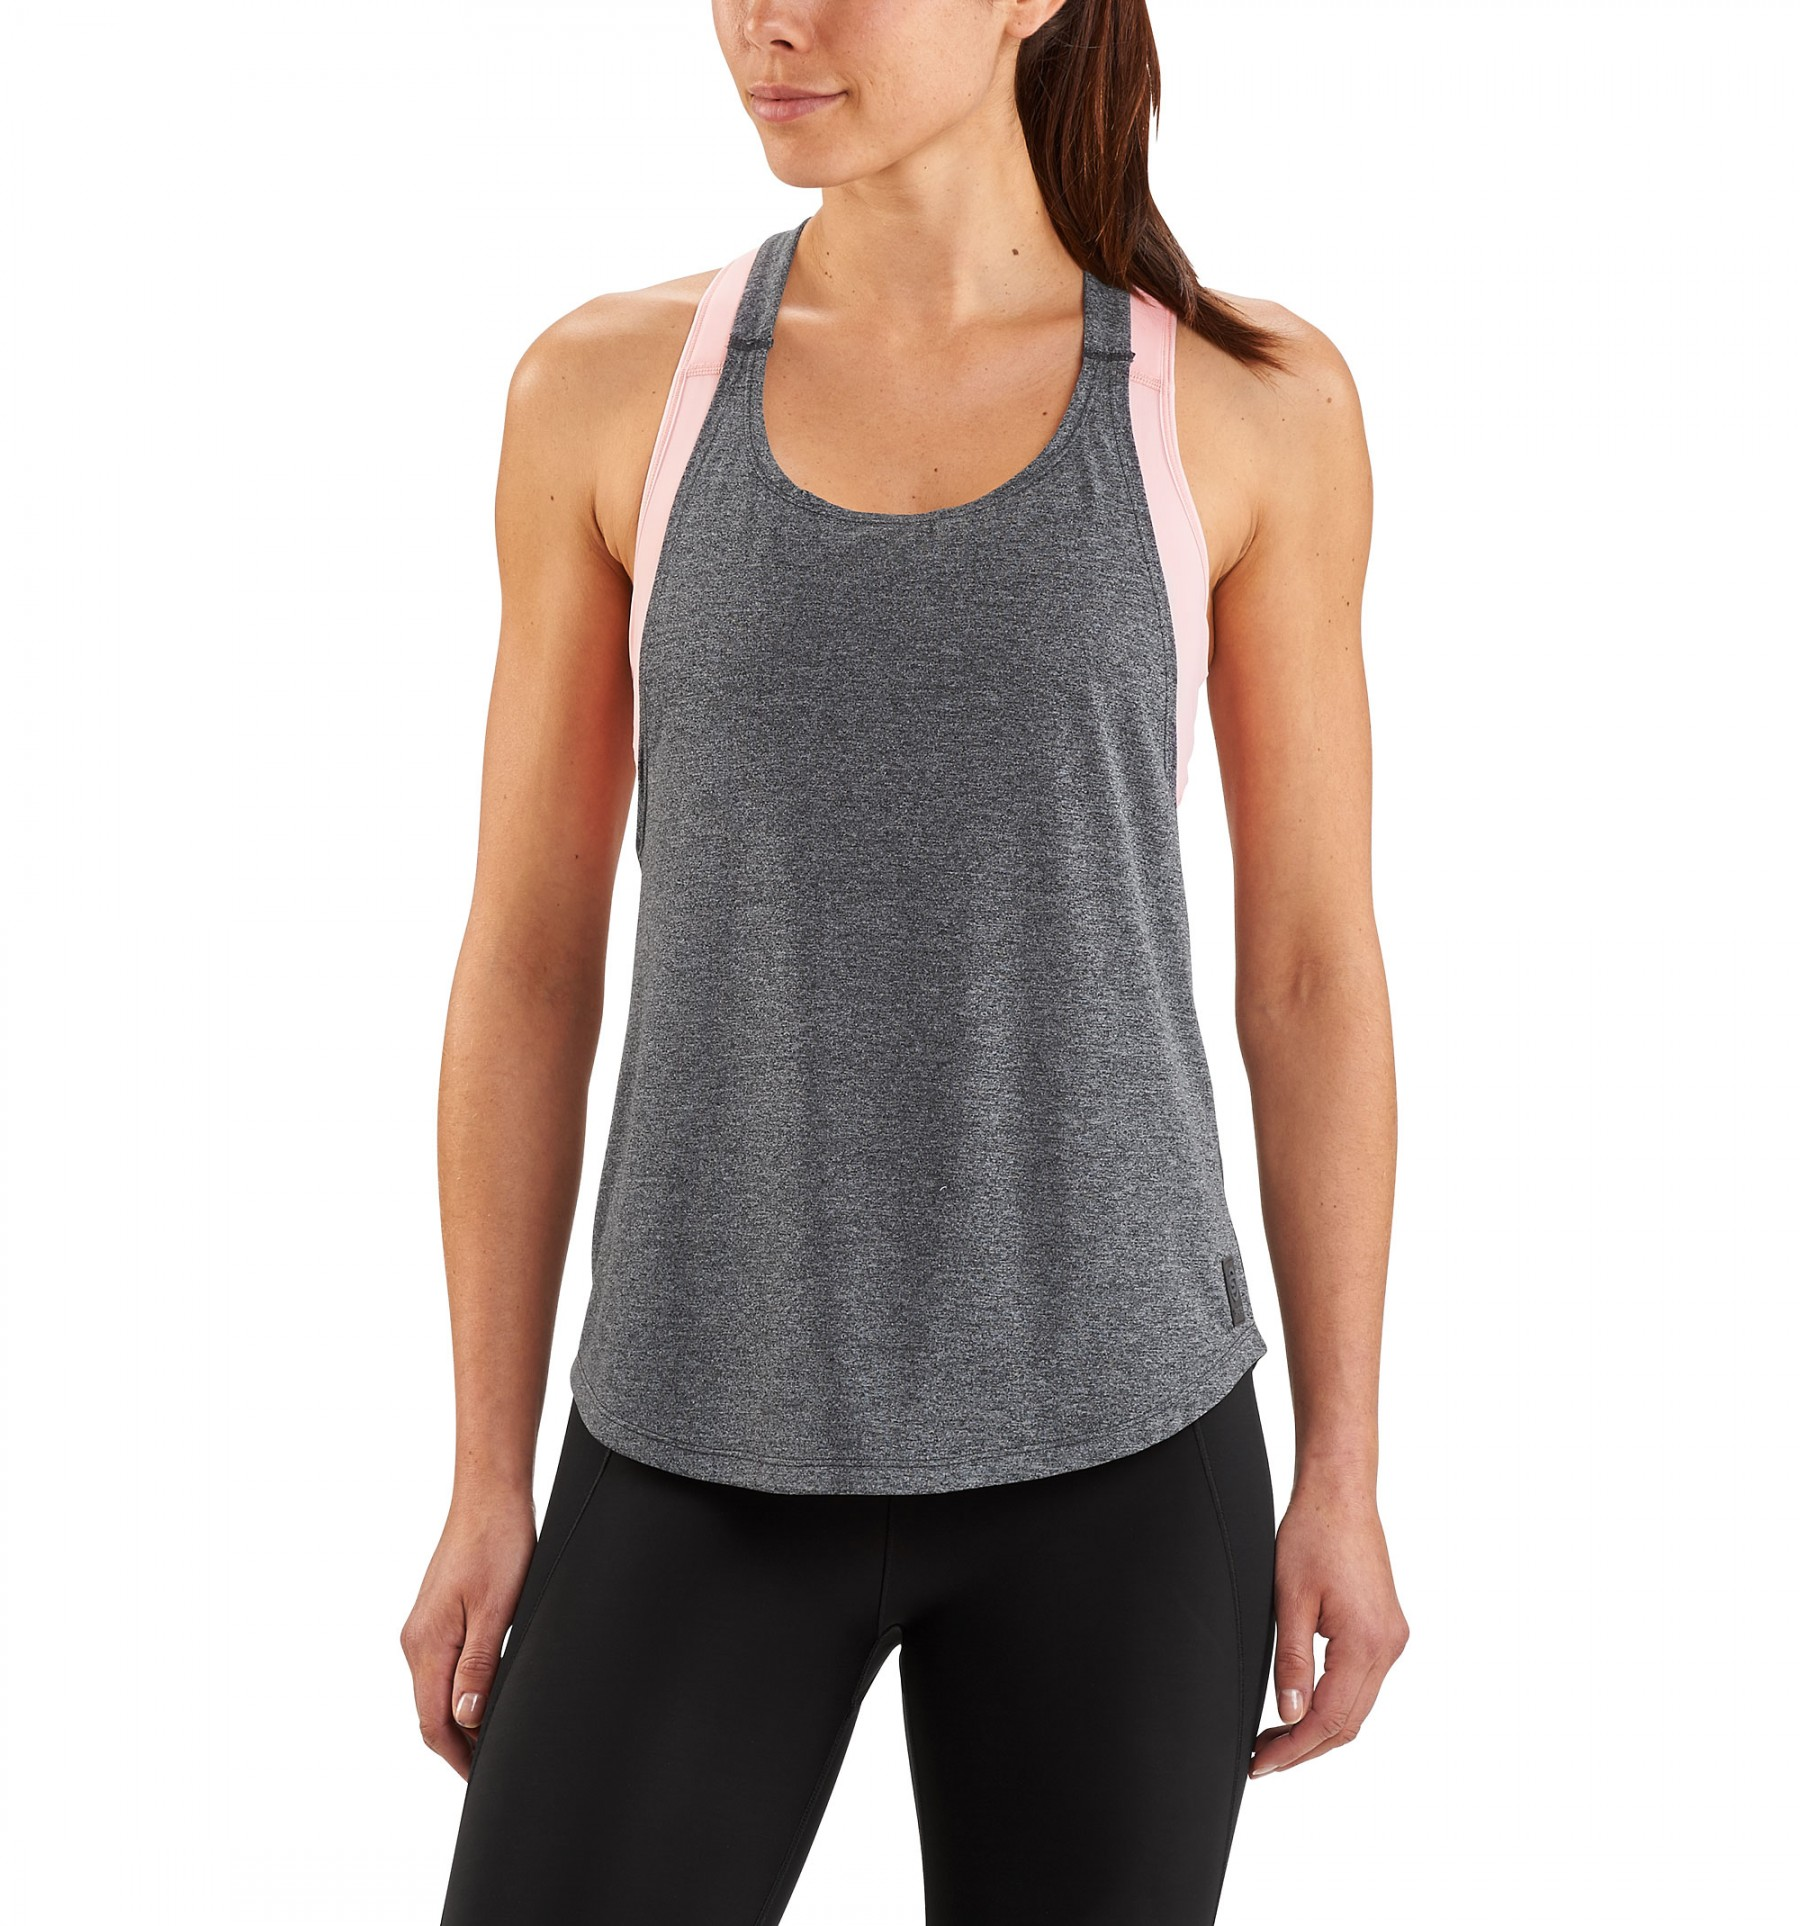 SKINS Womens Remote T-Bar Tank Top | Jerseys